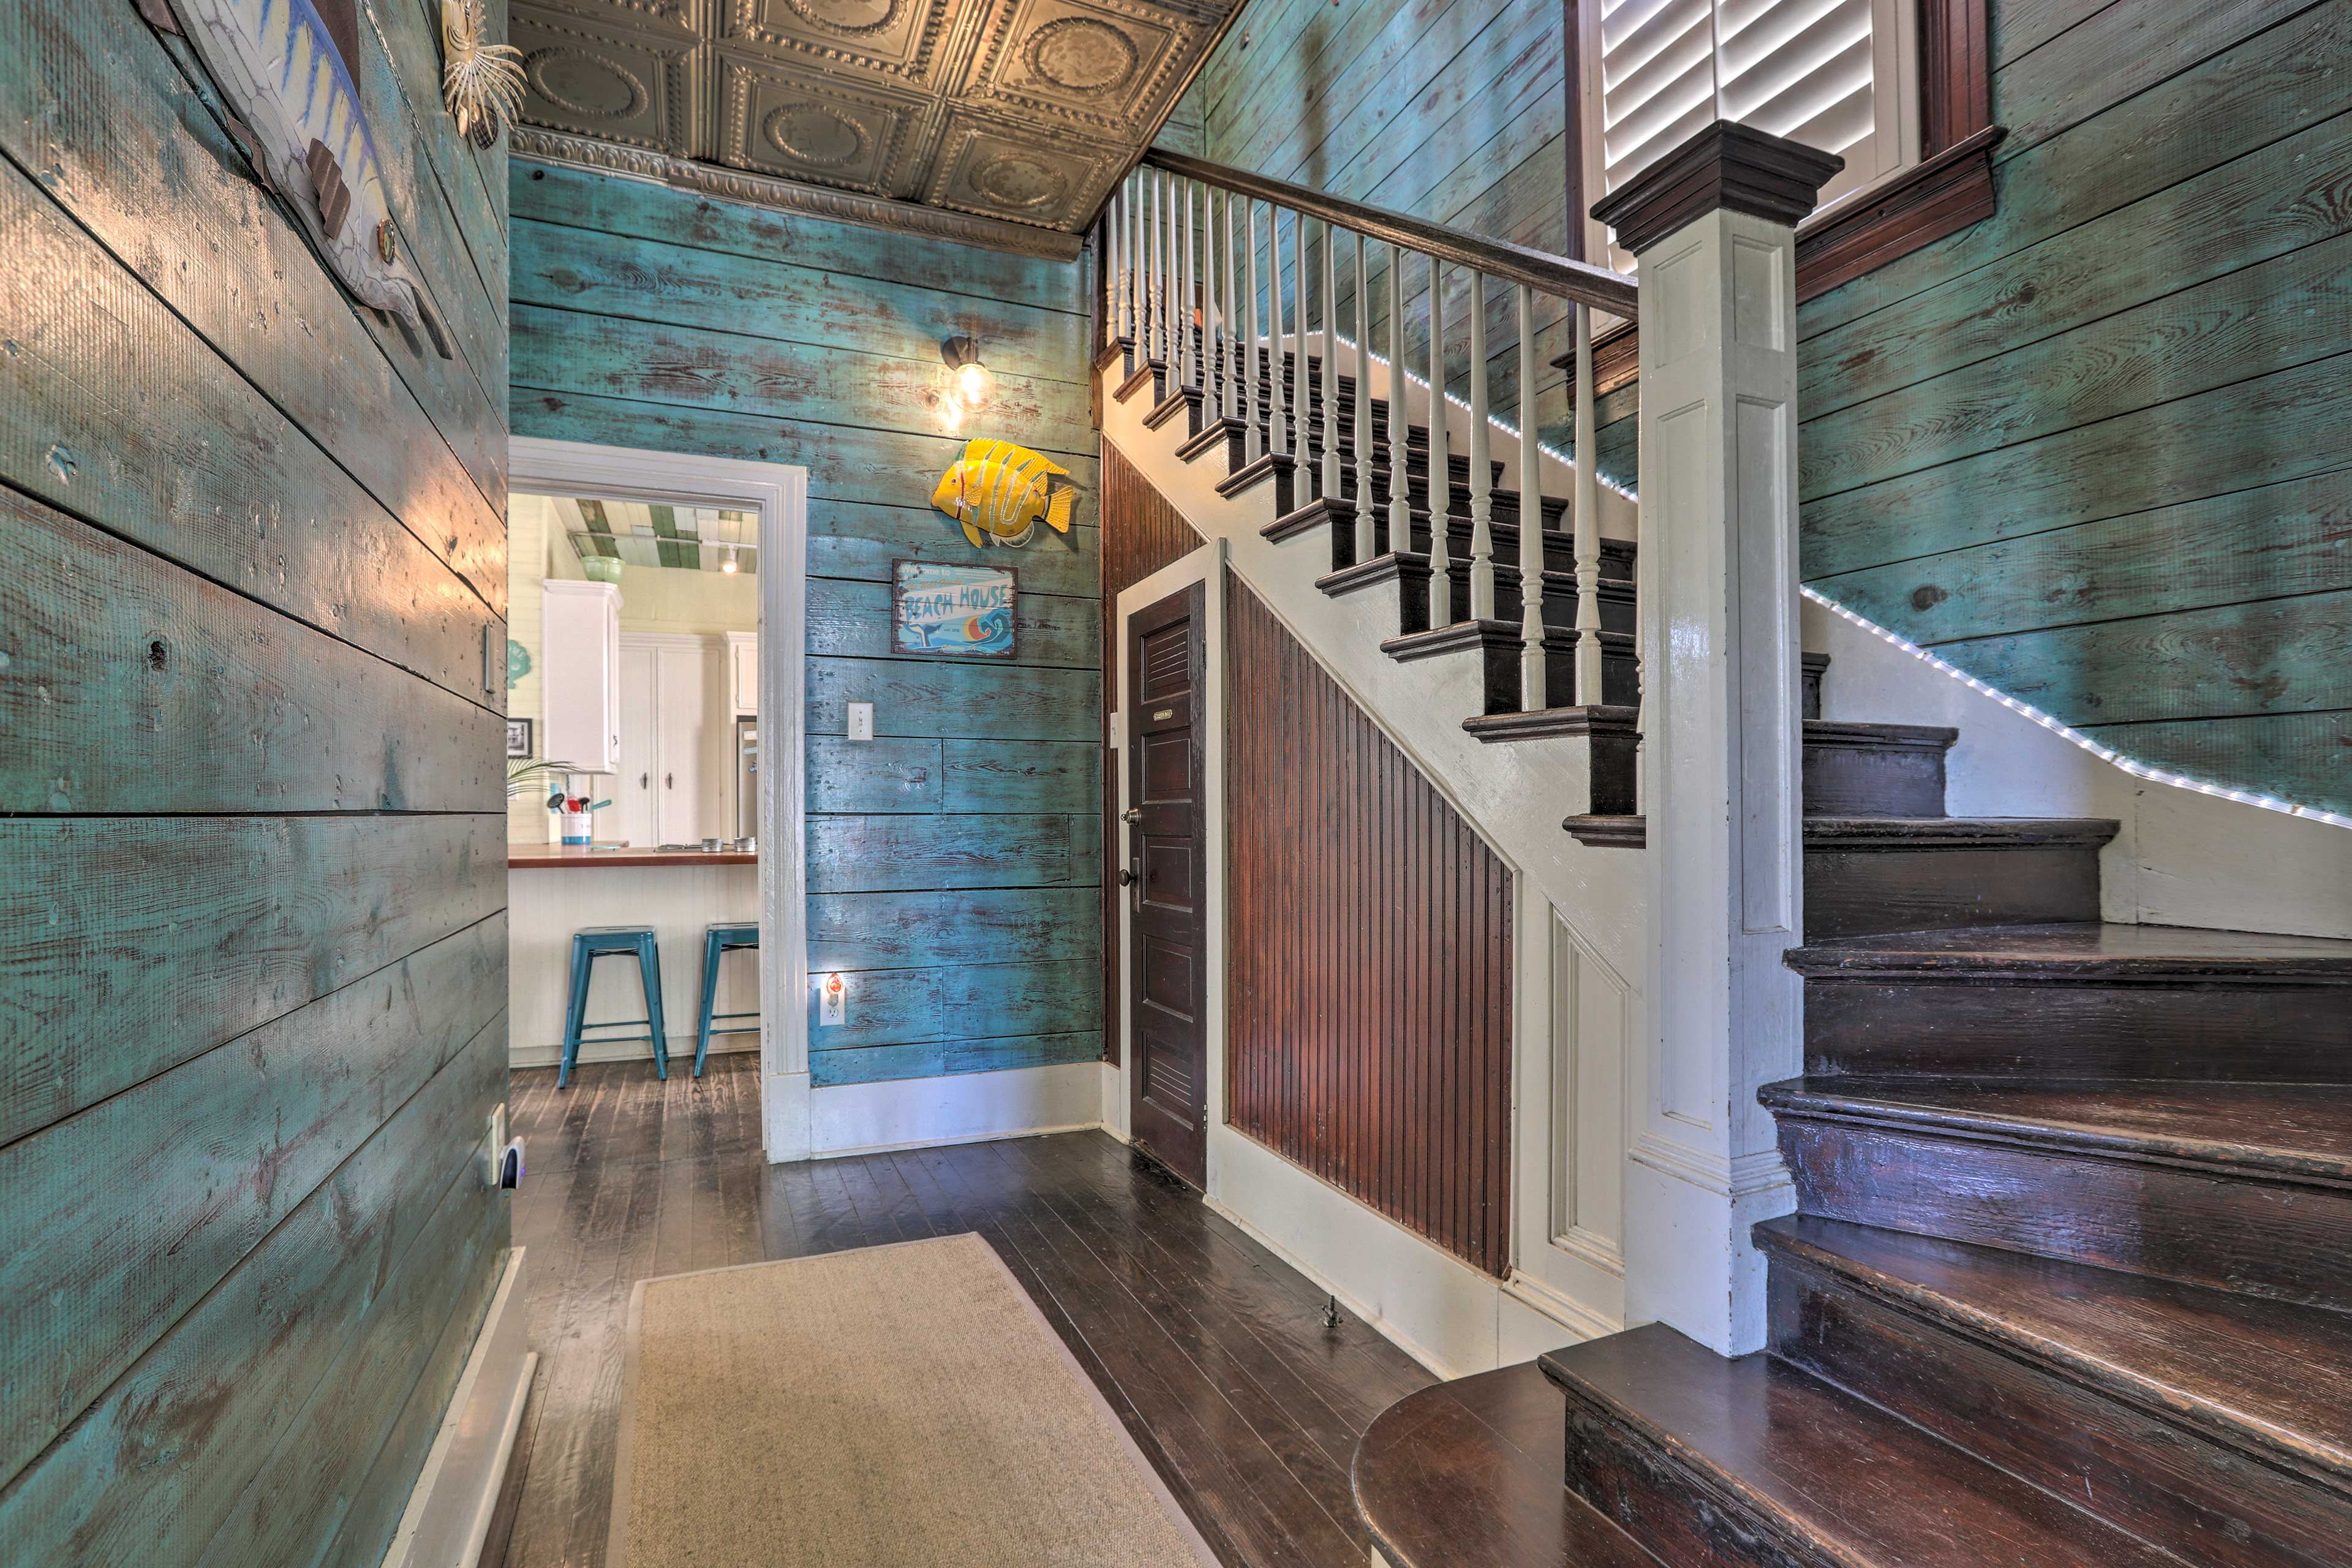 Step upstairs to access the other bedrooms.